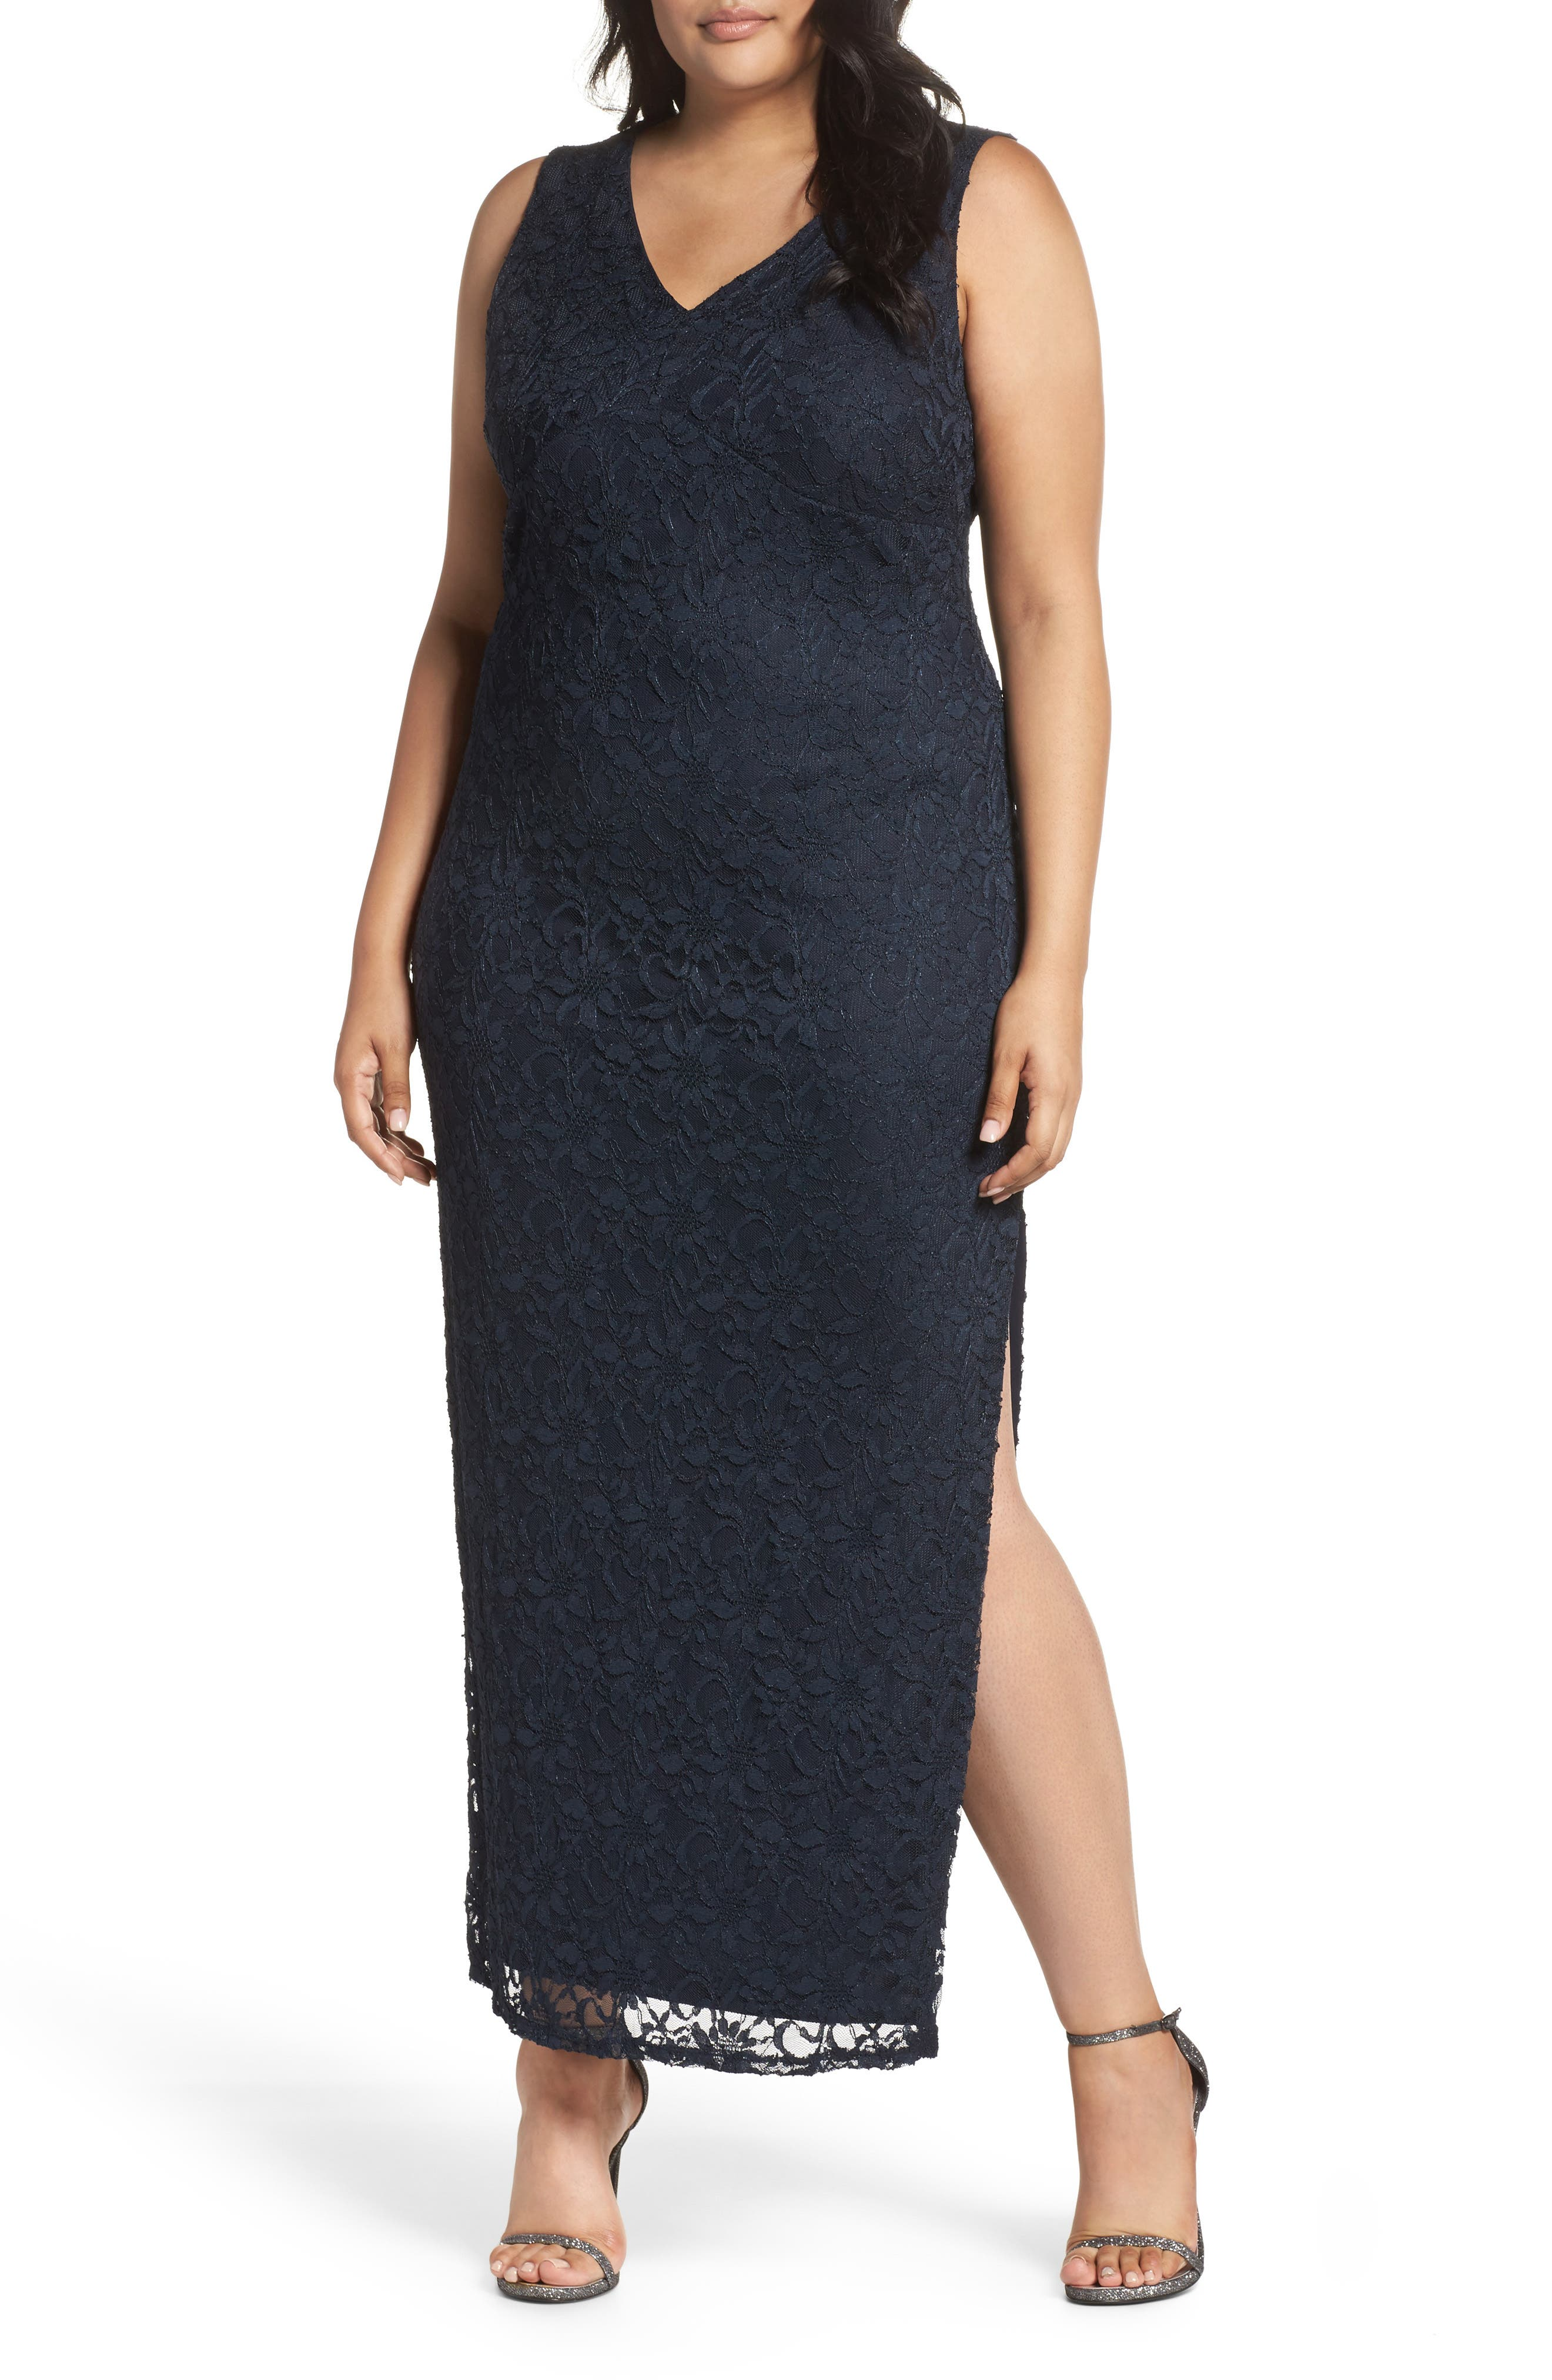 Alternate Image 1 Selected - Marina Cutout Back Lace Empire Gown (Plus Size)